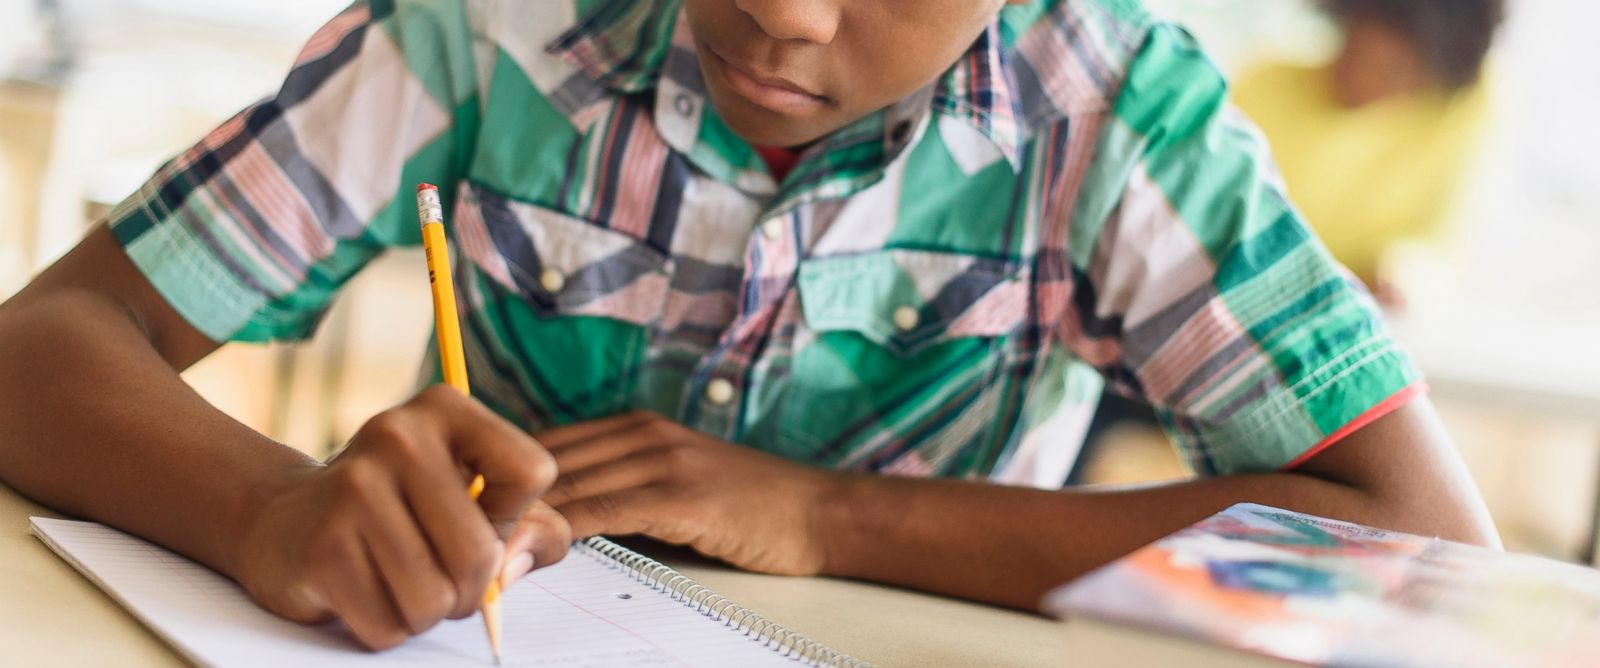 no homework research A stanford researcher found that students in high-achieving communities who spend too much time on homework experience stanford research shows pitfalls of homework.